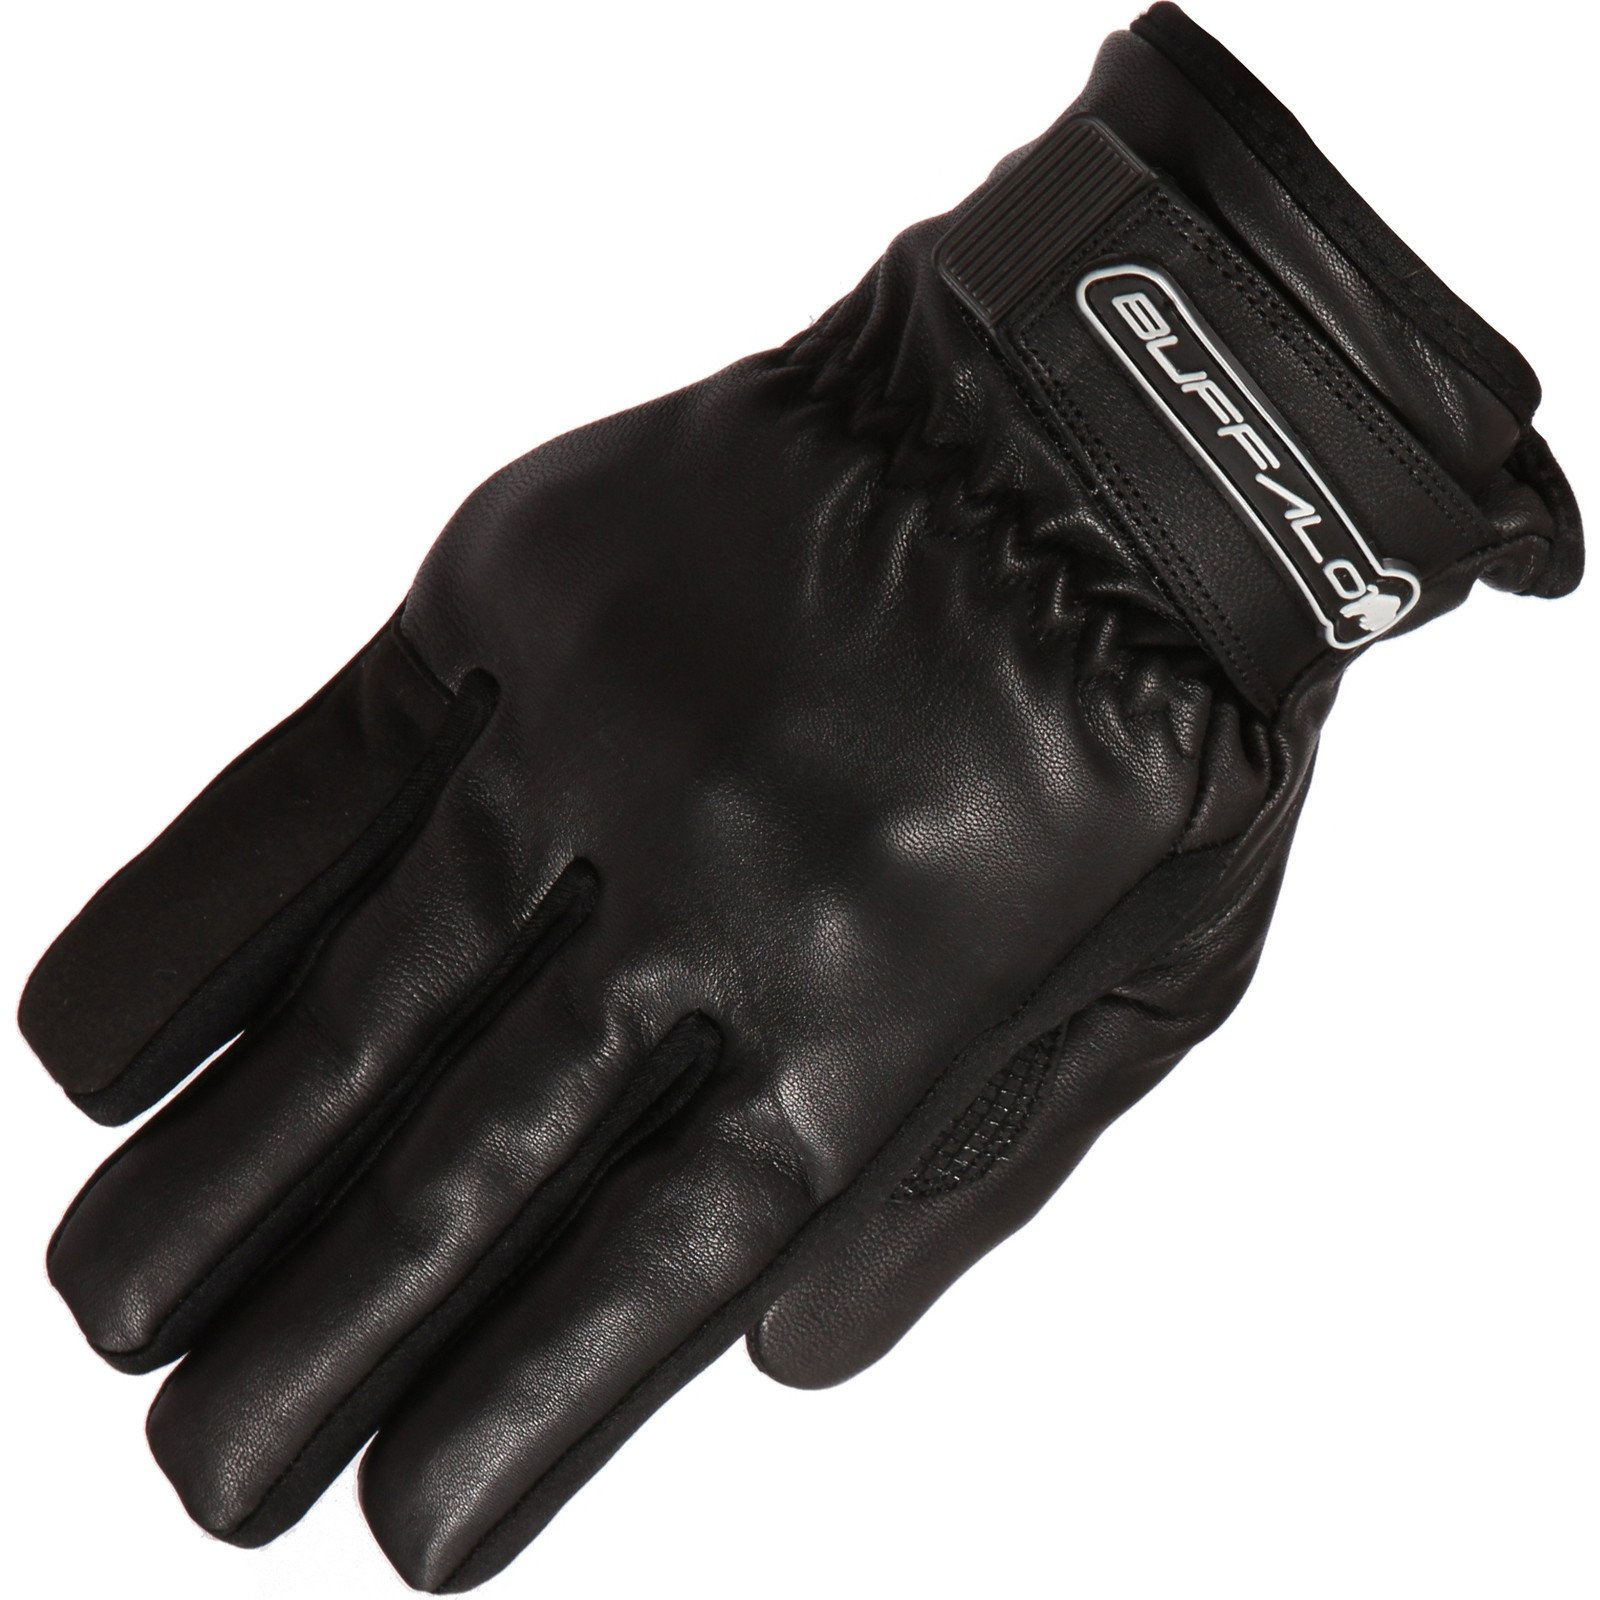 Thinsulate Lined Leather Motorcycle Gloves Janitorial